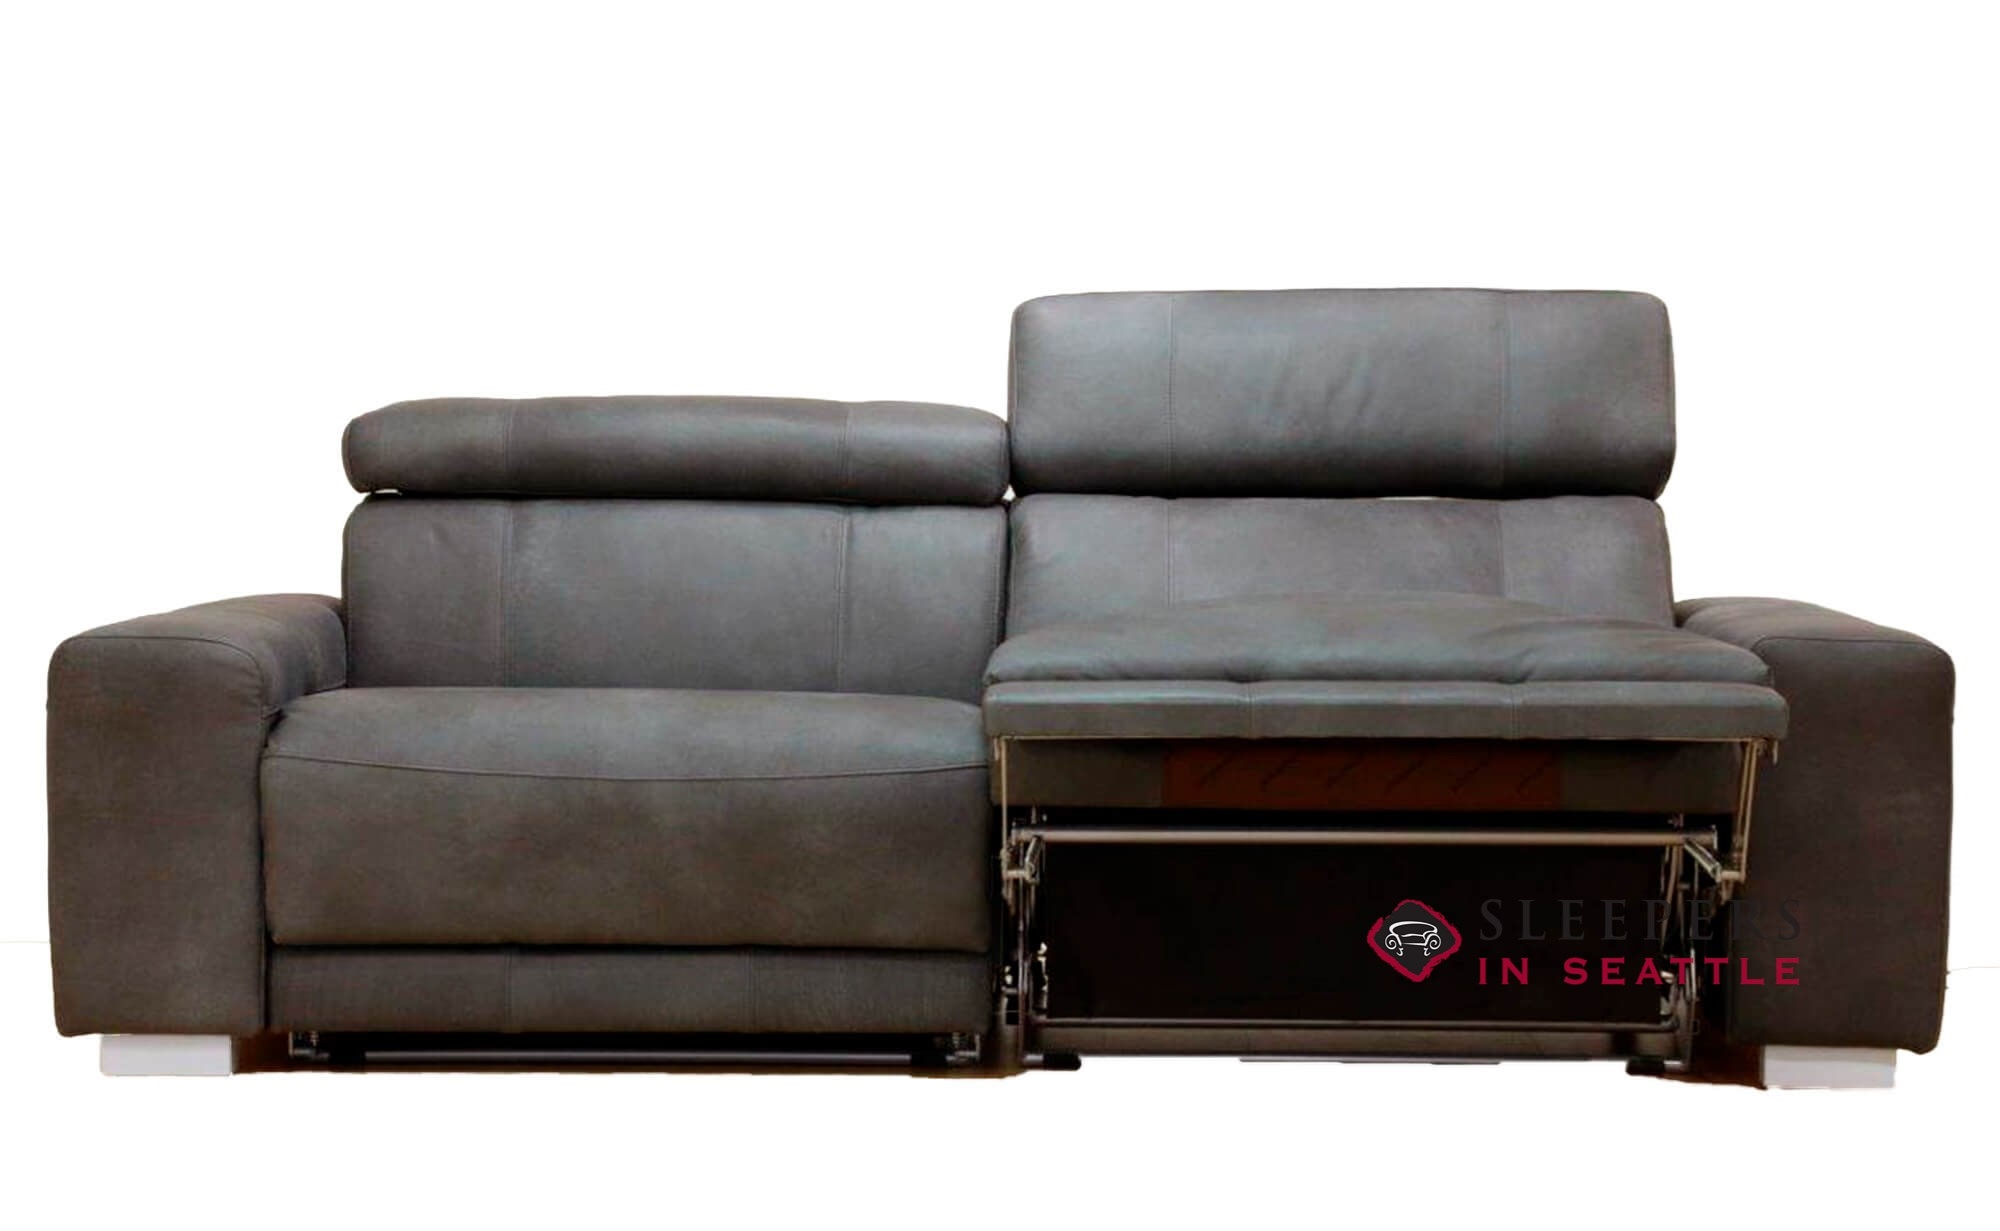 Ordinaire Luonto Monex Multifunctional Dual Sofa Bed And Recliner